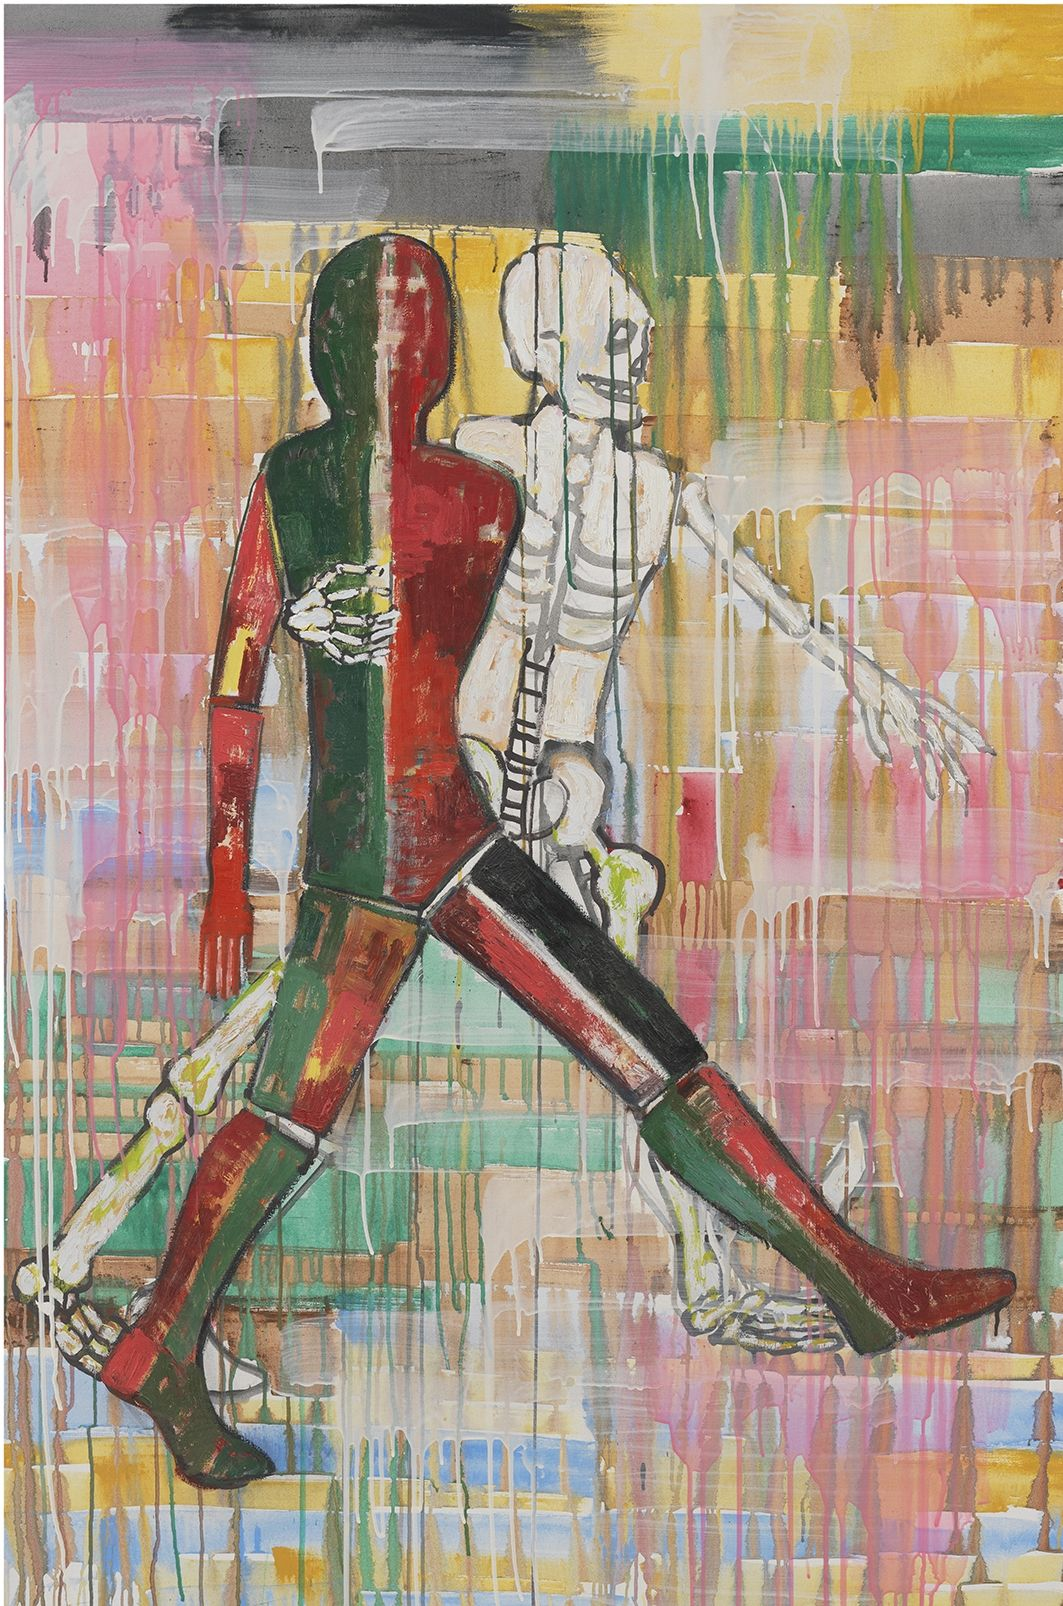 Waltz, 2002, Mixed media on canvas